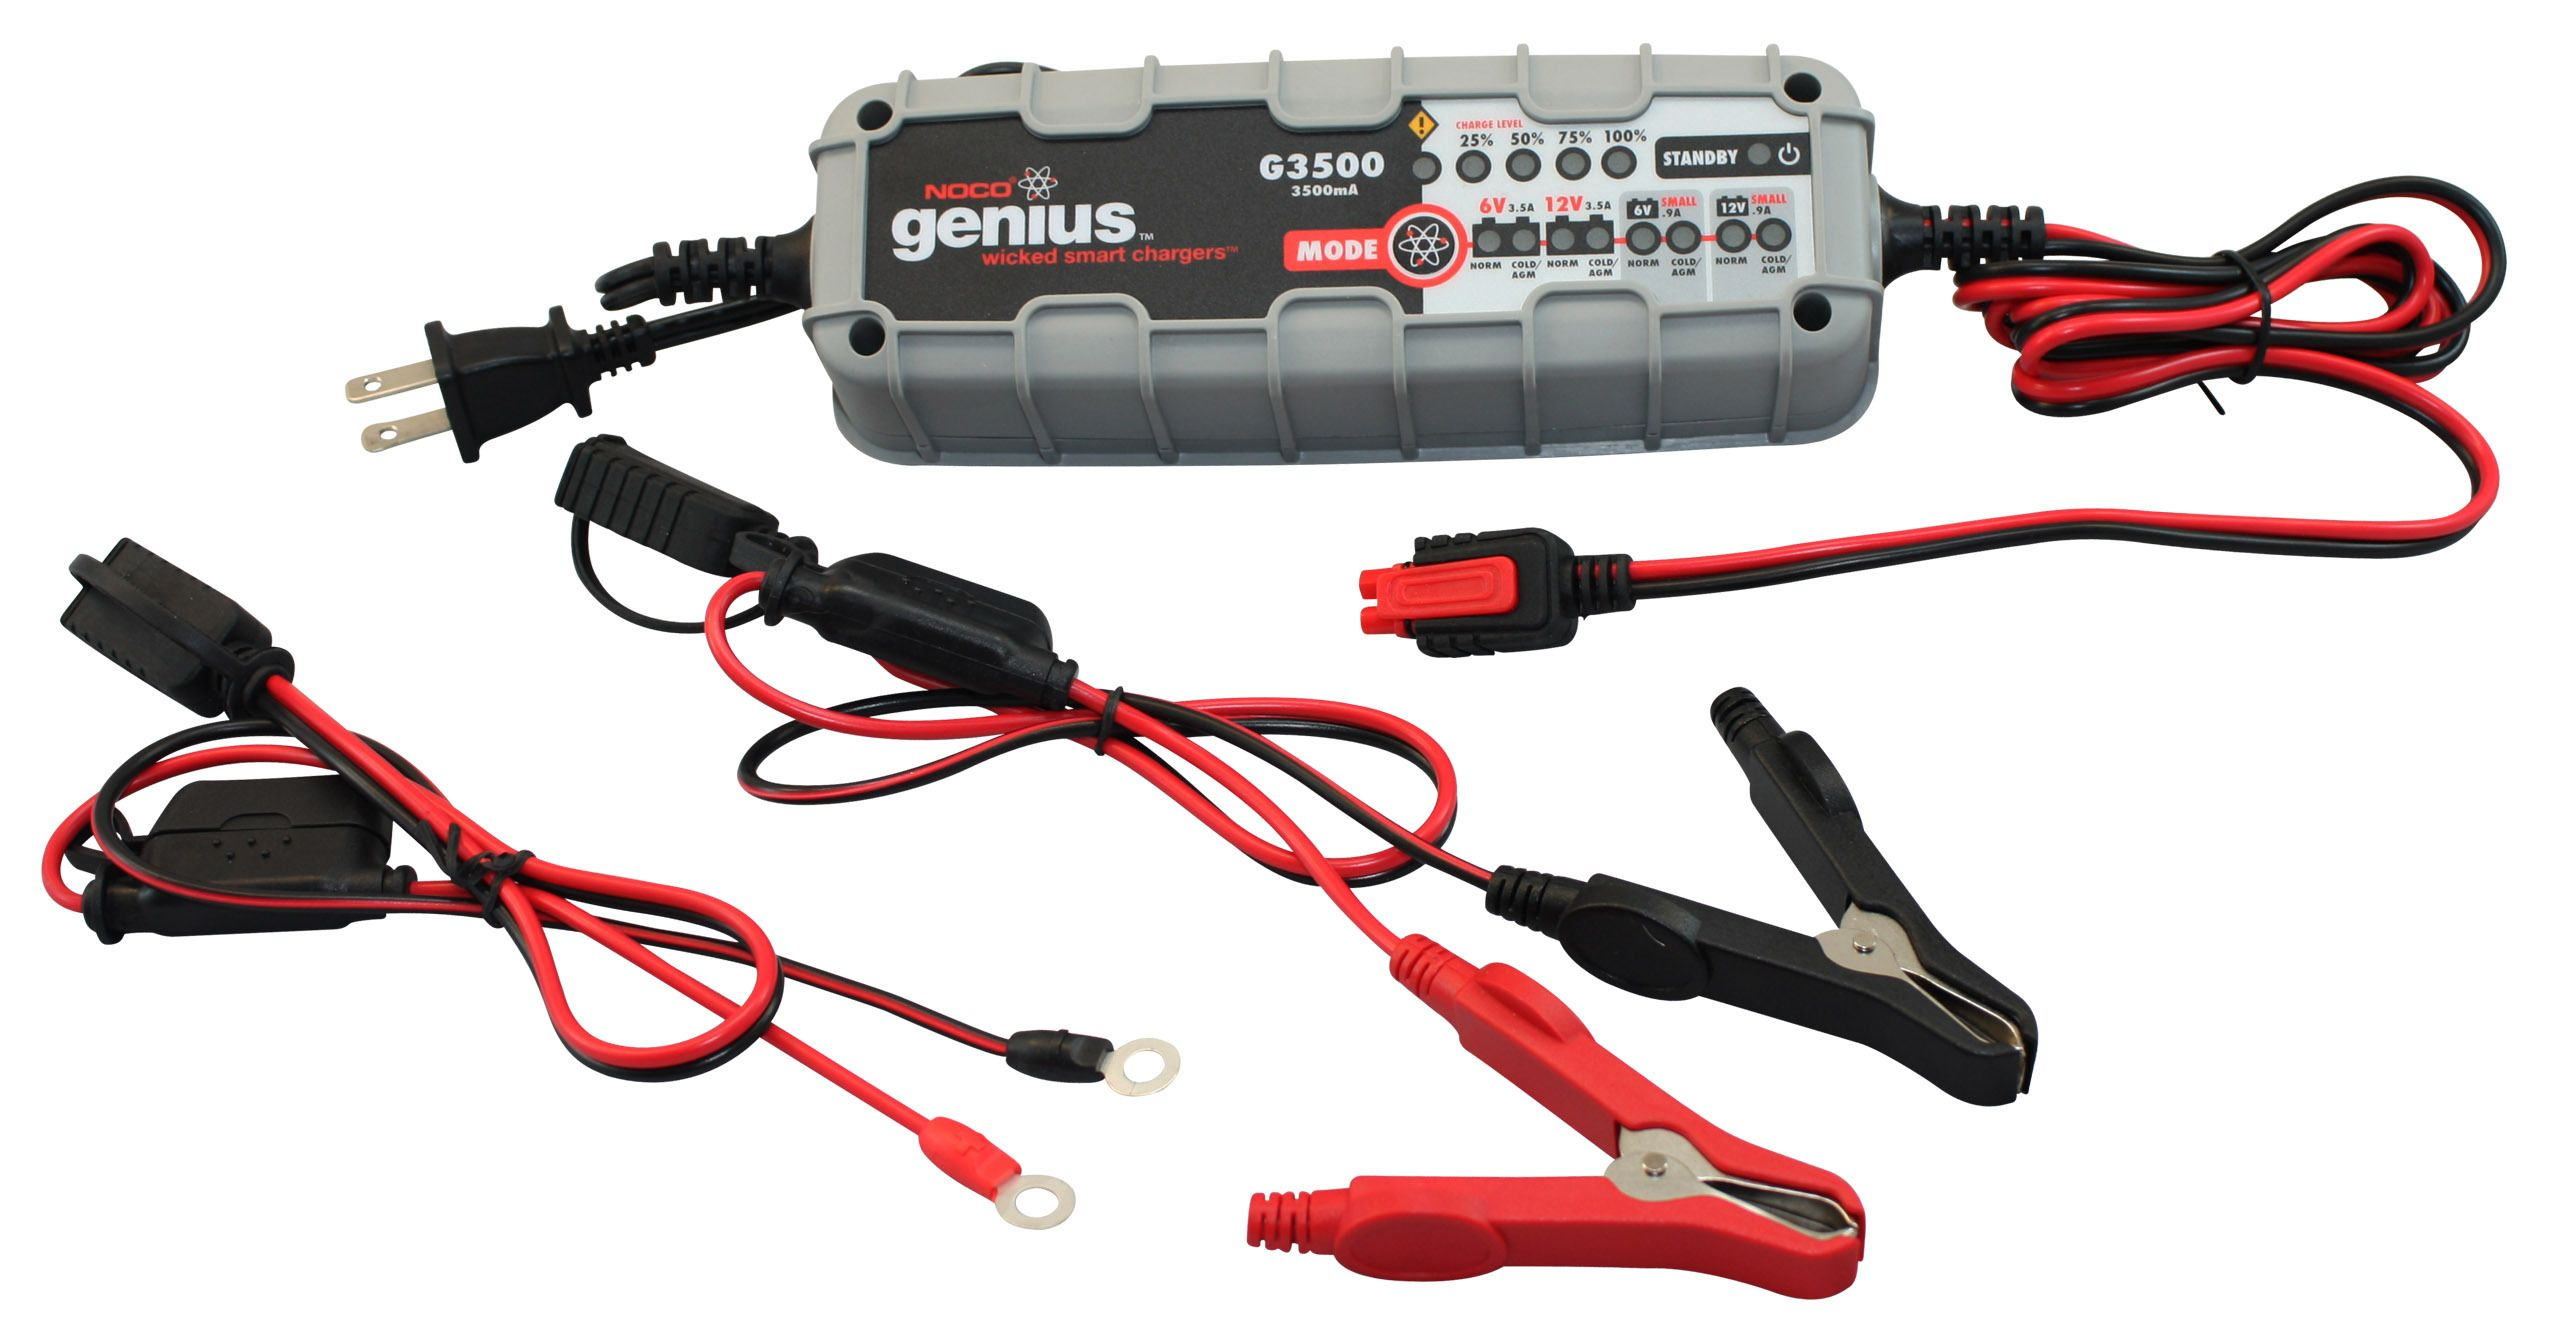 noco g3500 battery charger - revzilla